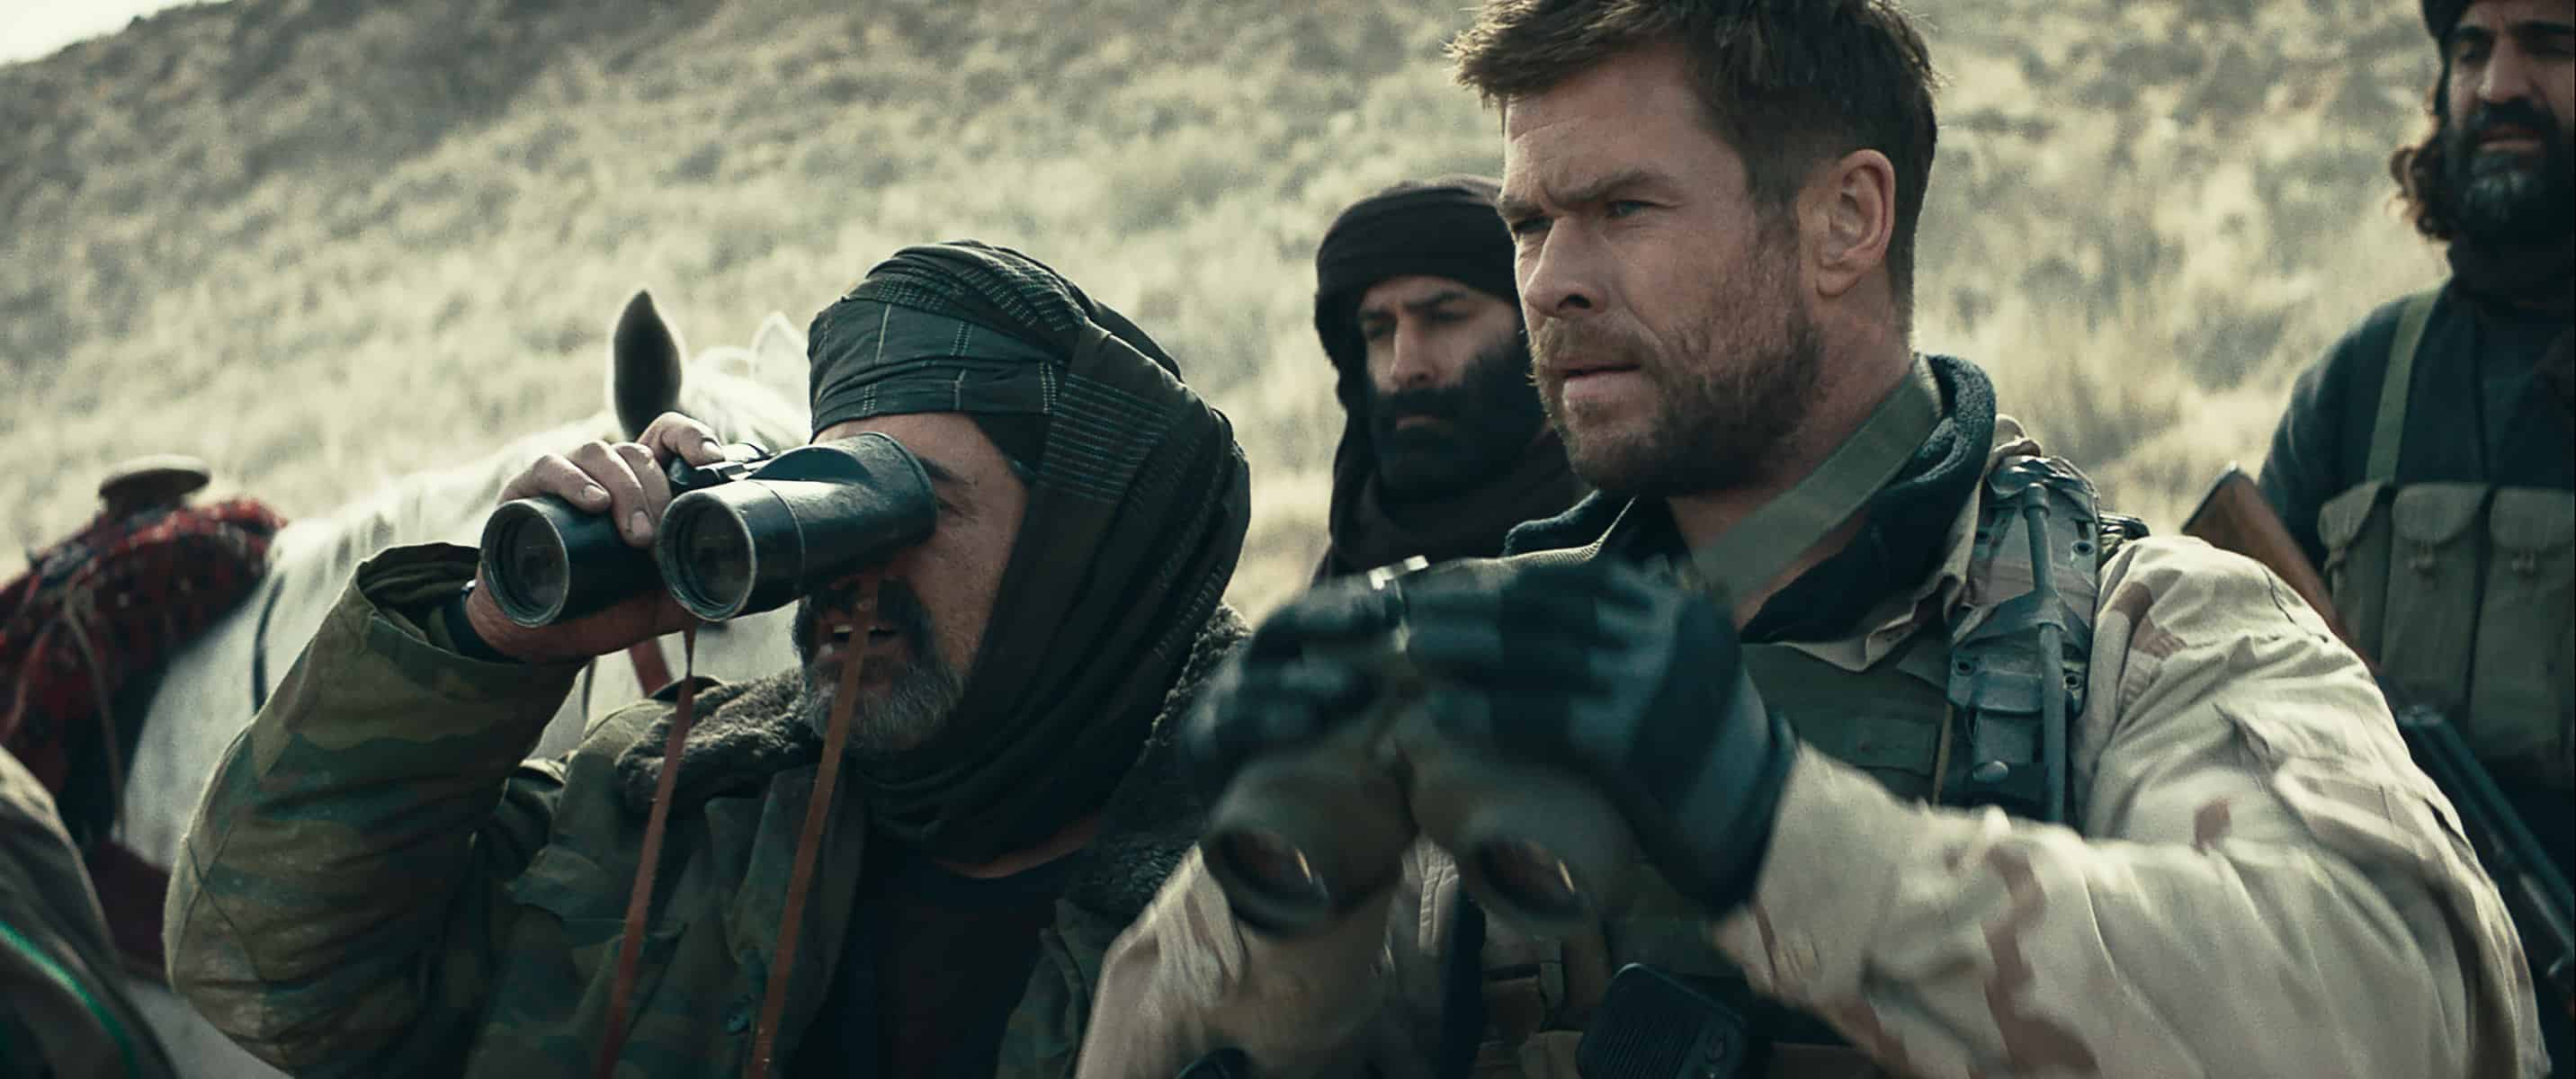 12 Strong Movie - A Heart of a Hero ( + a Twitter Party ...